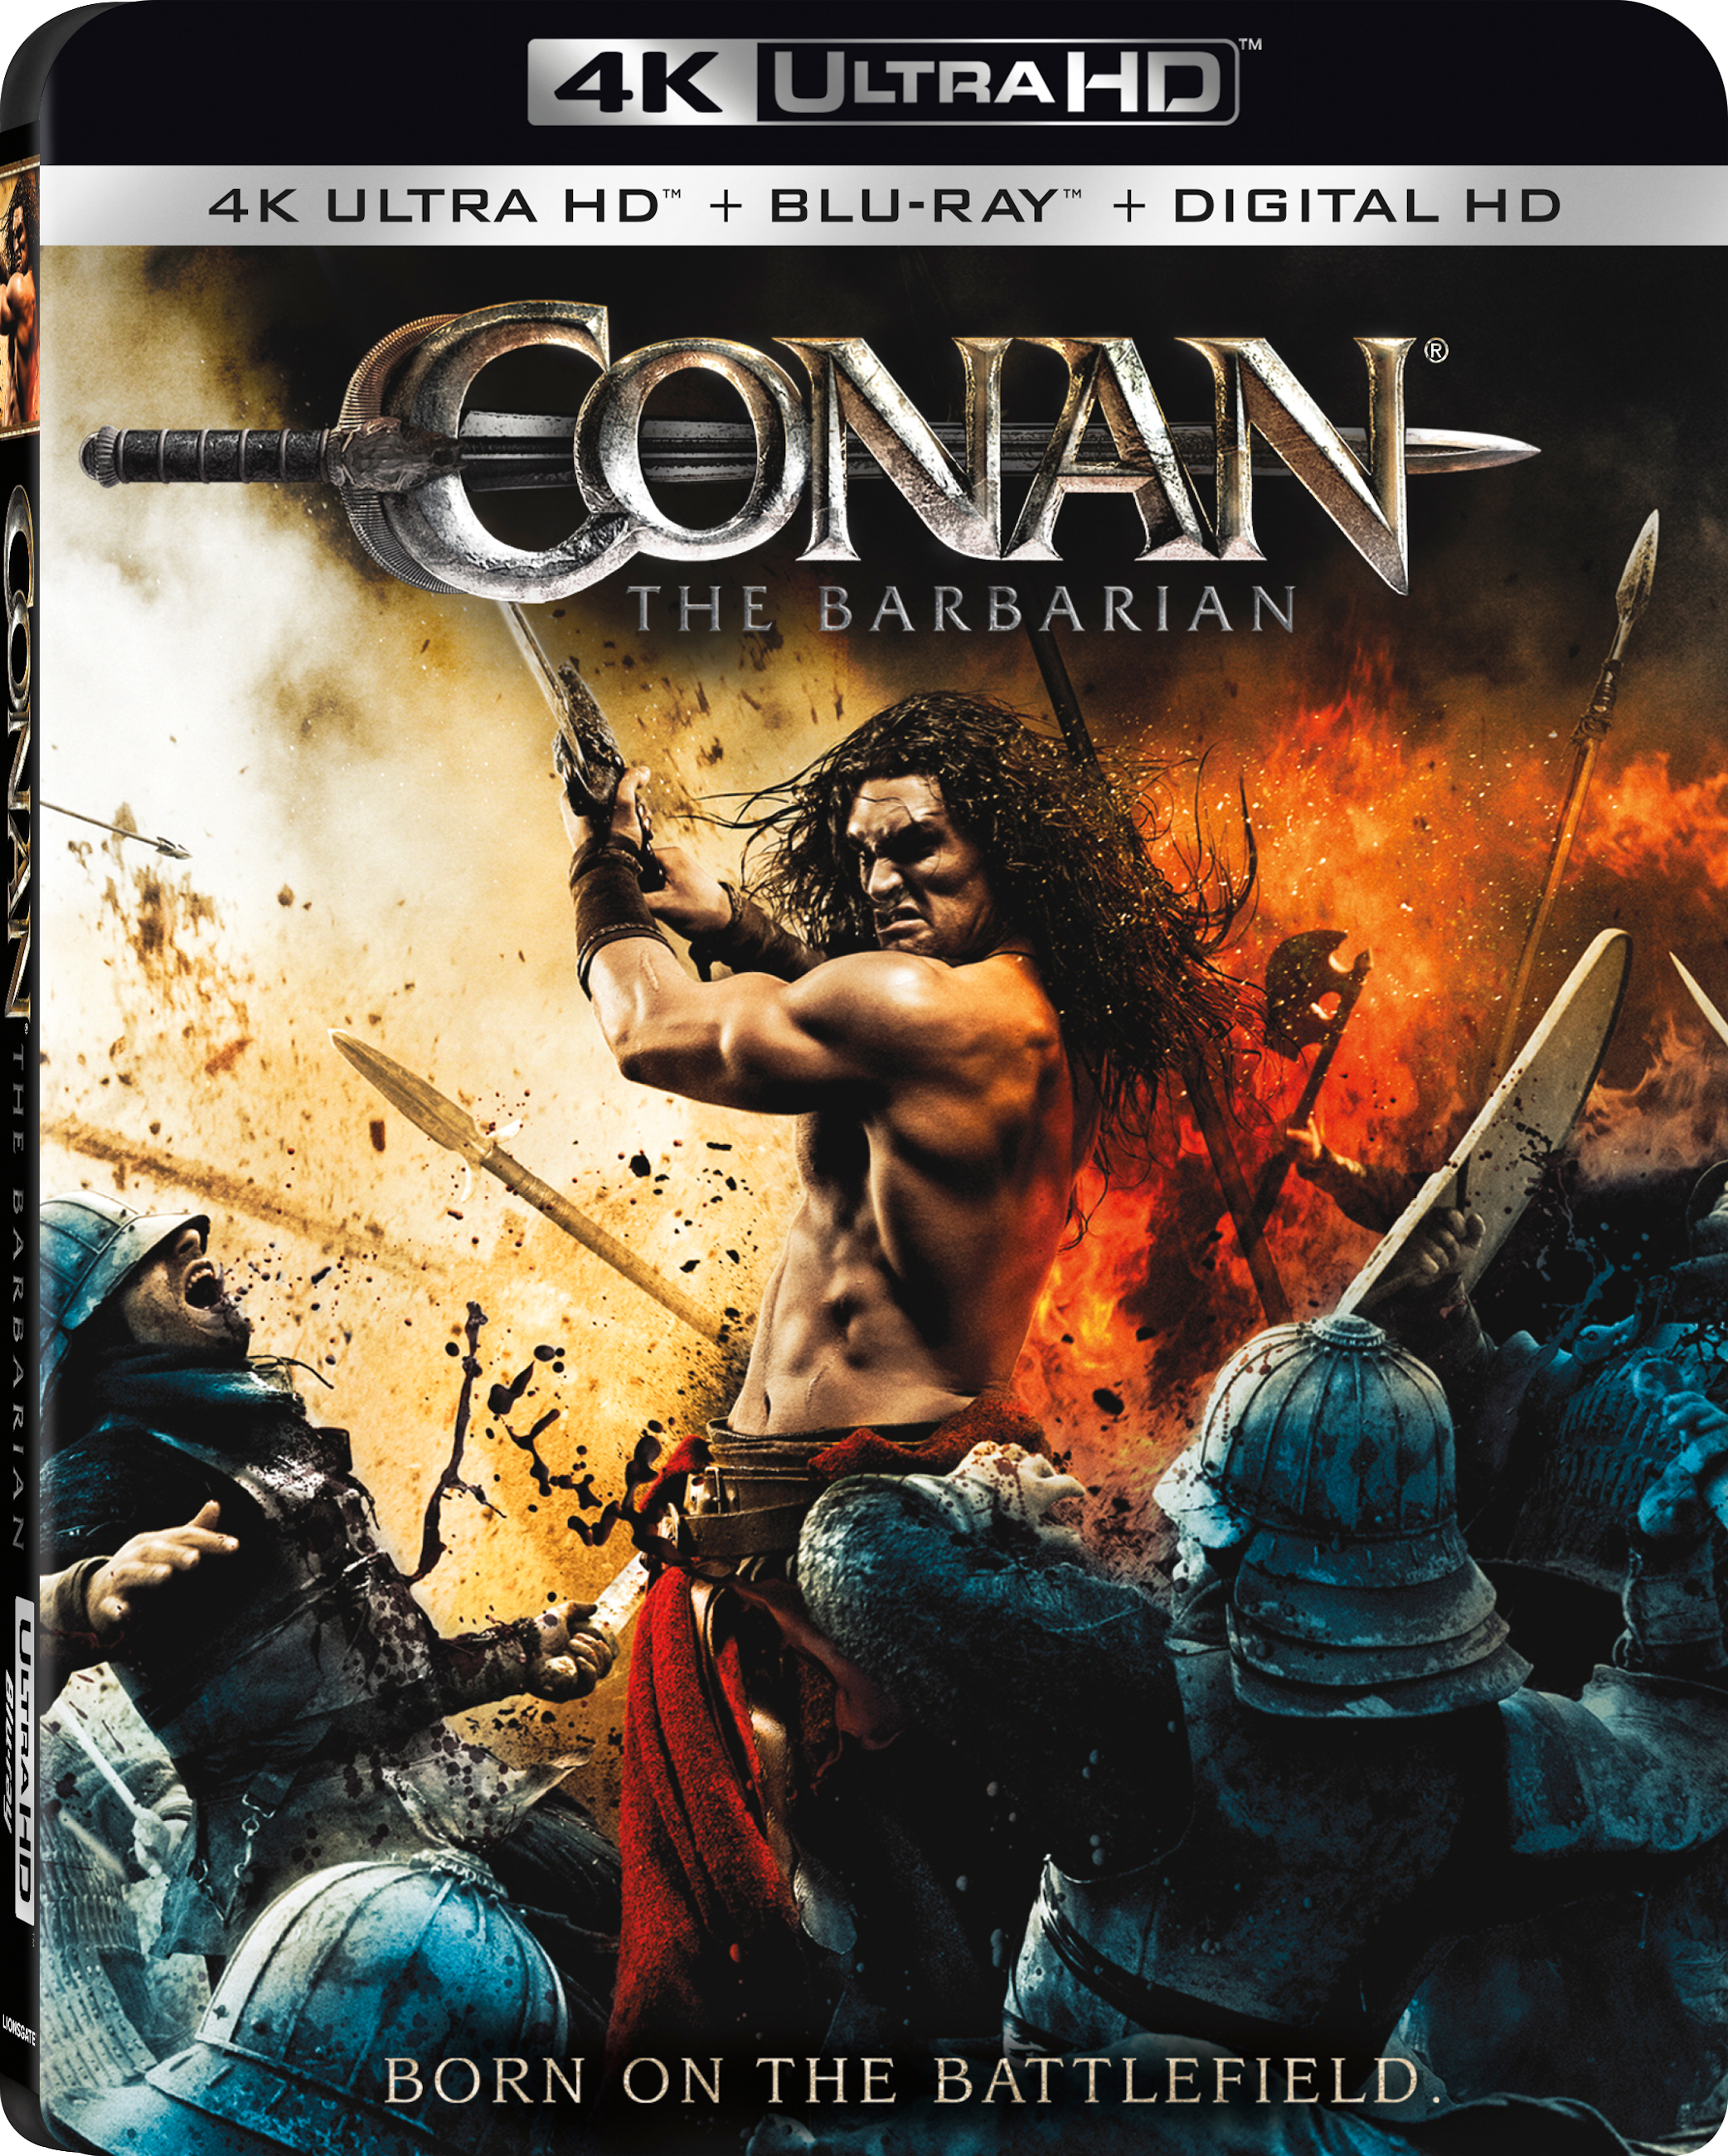 Conan the Barbarian 4K (2011) Ultra HD Blu-ray